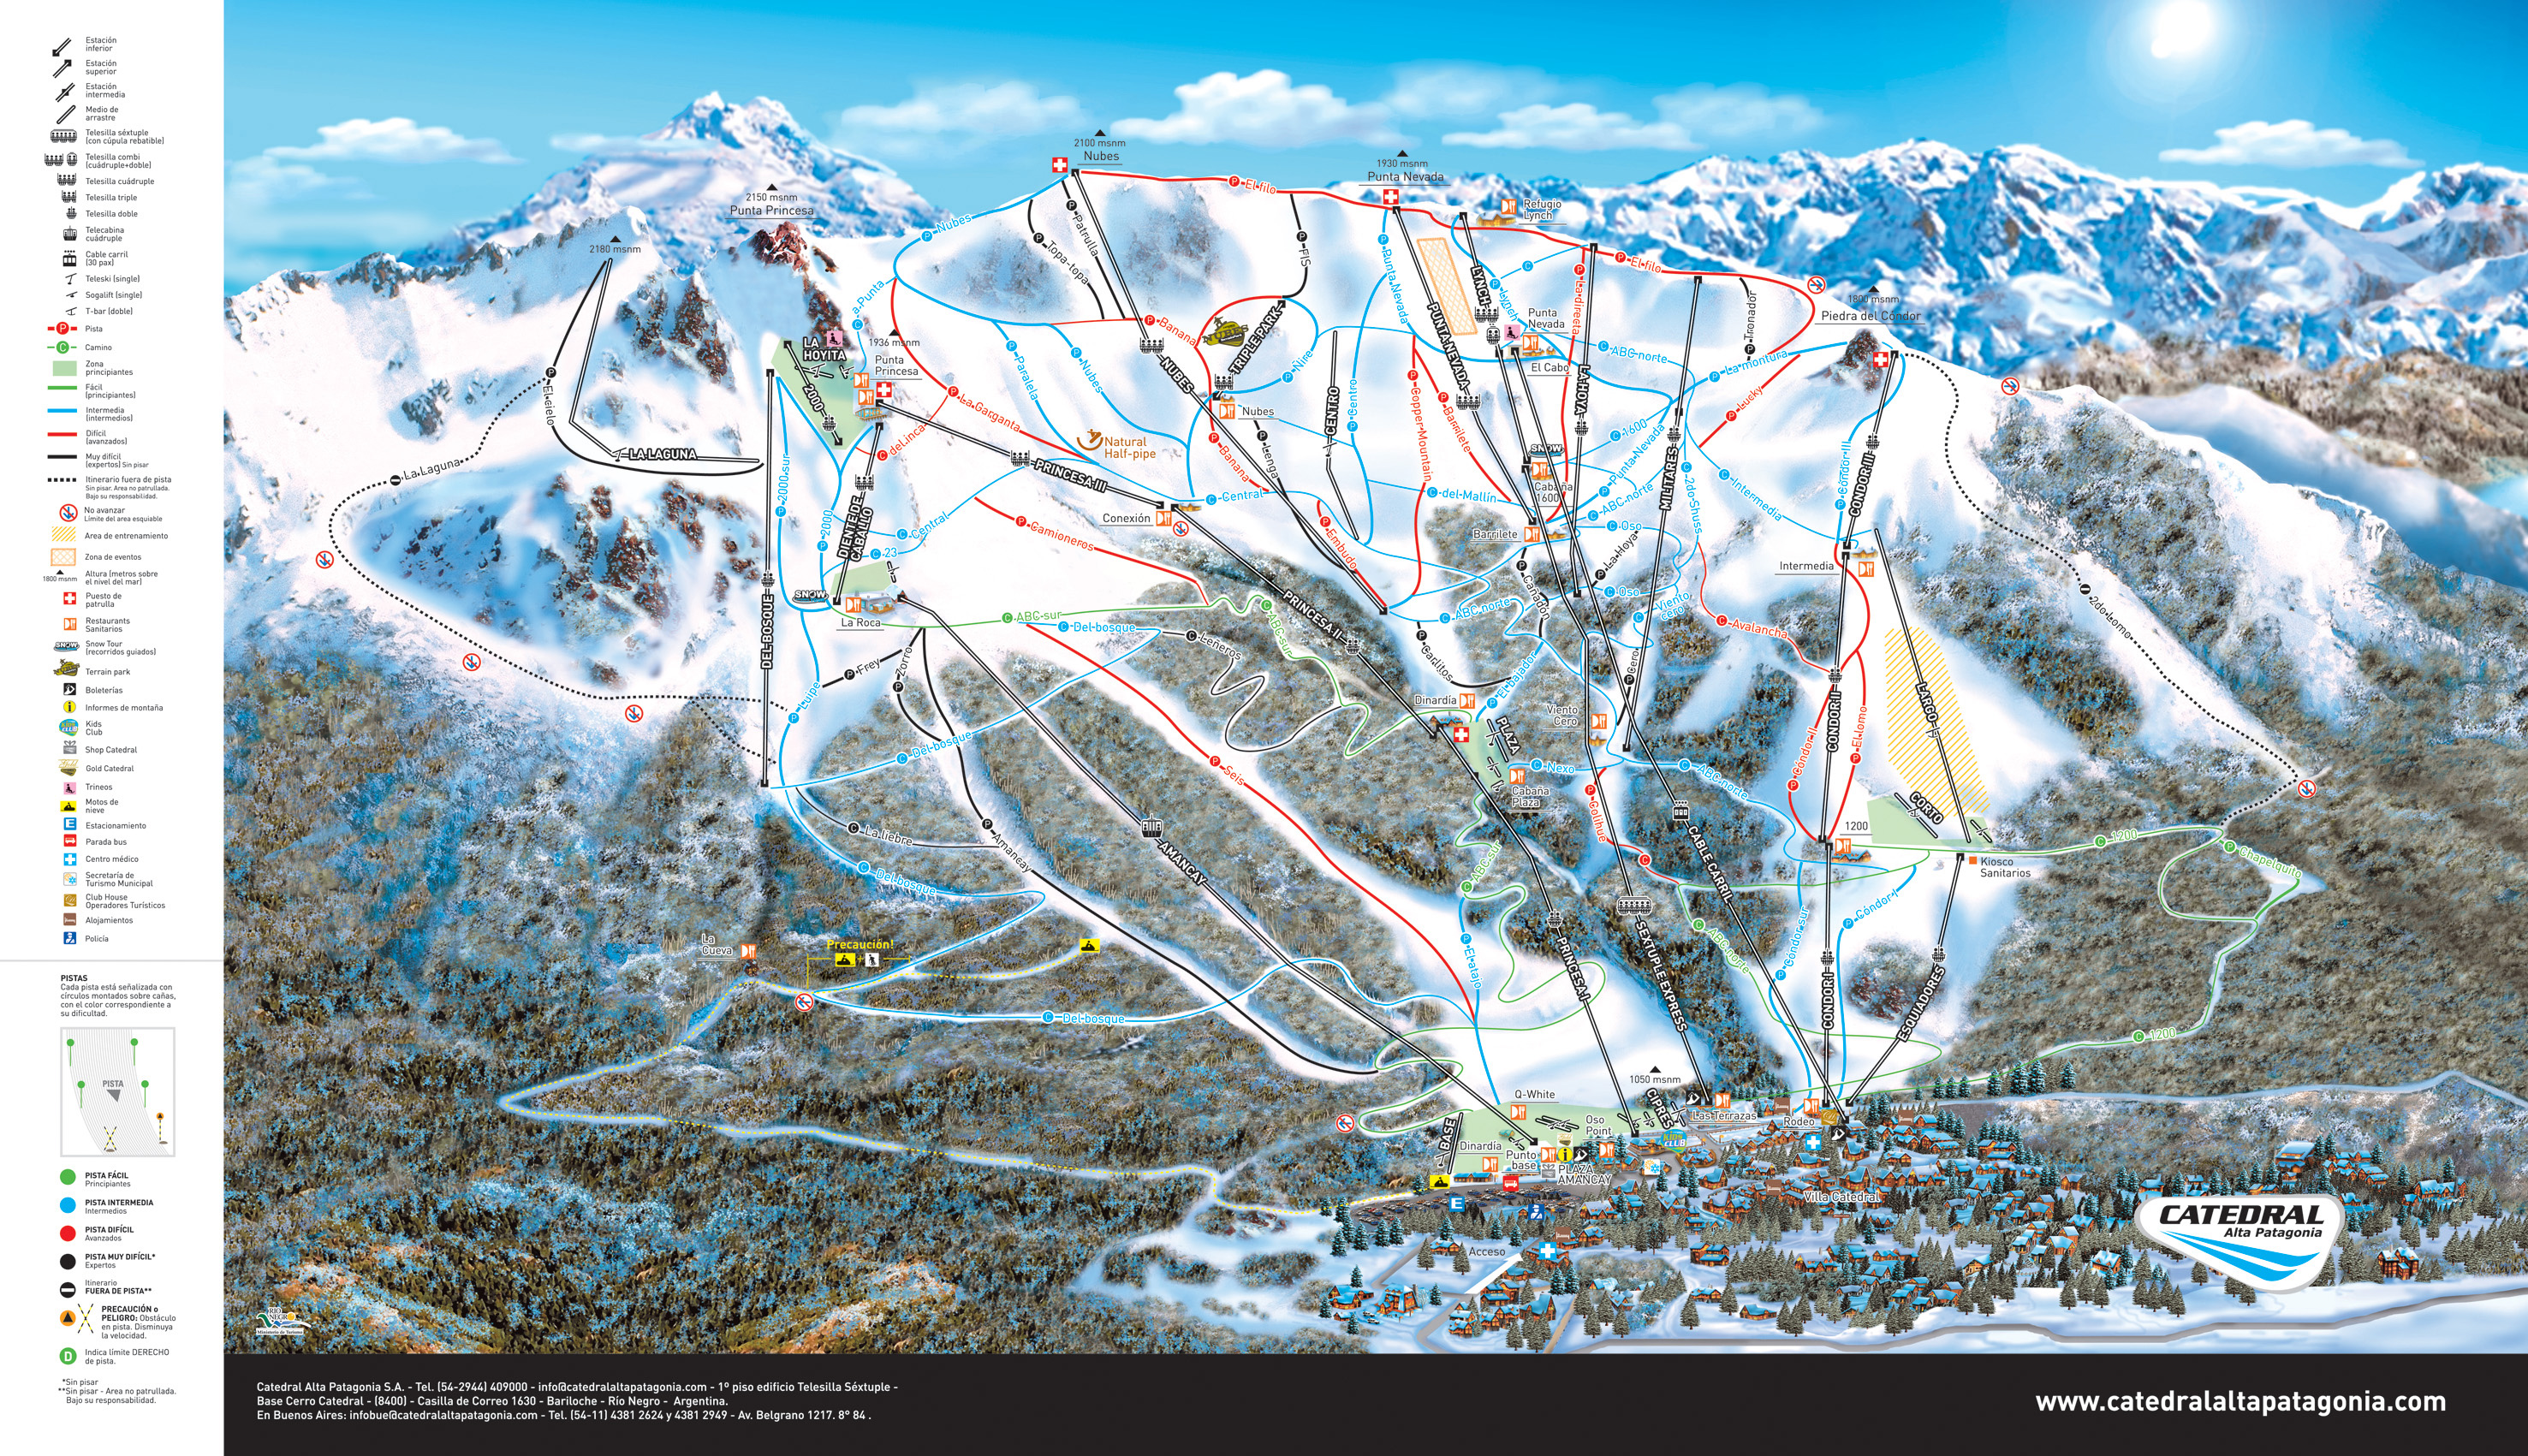 Catedral alta patagonia ski trail map bariloche argentina mappery gumiabroncs Image collections